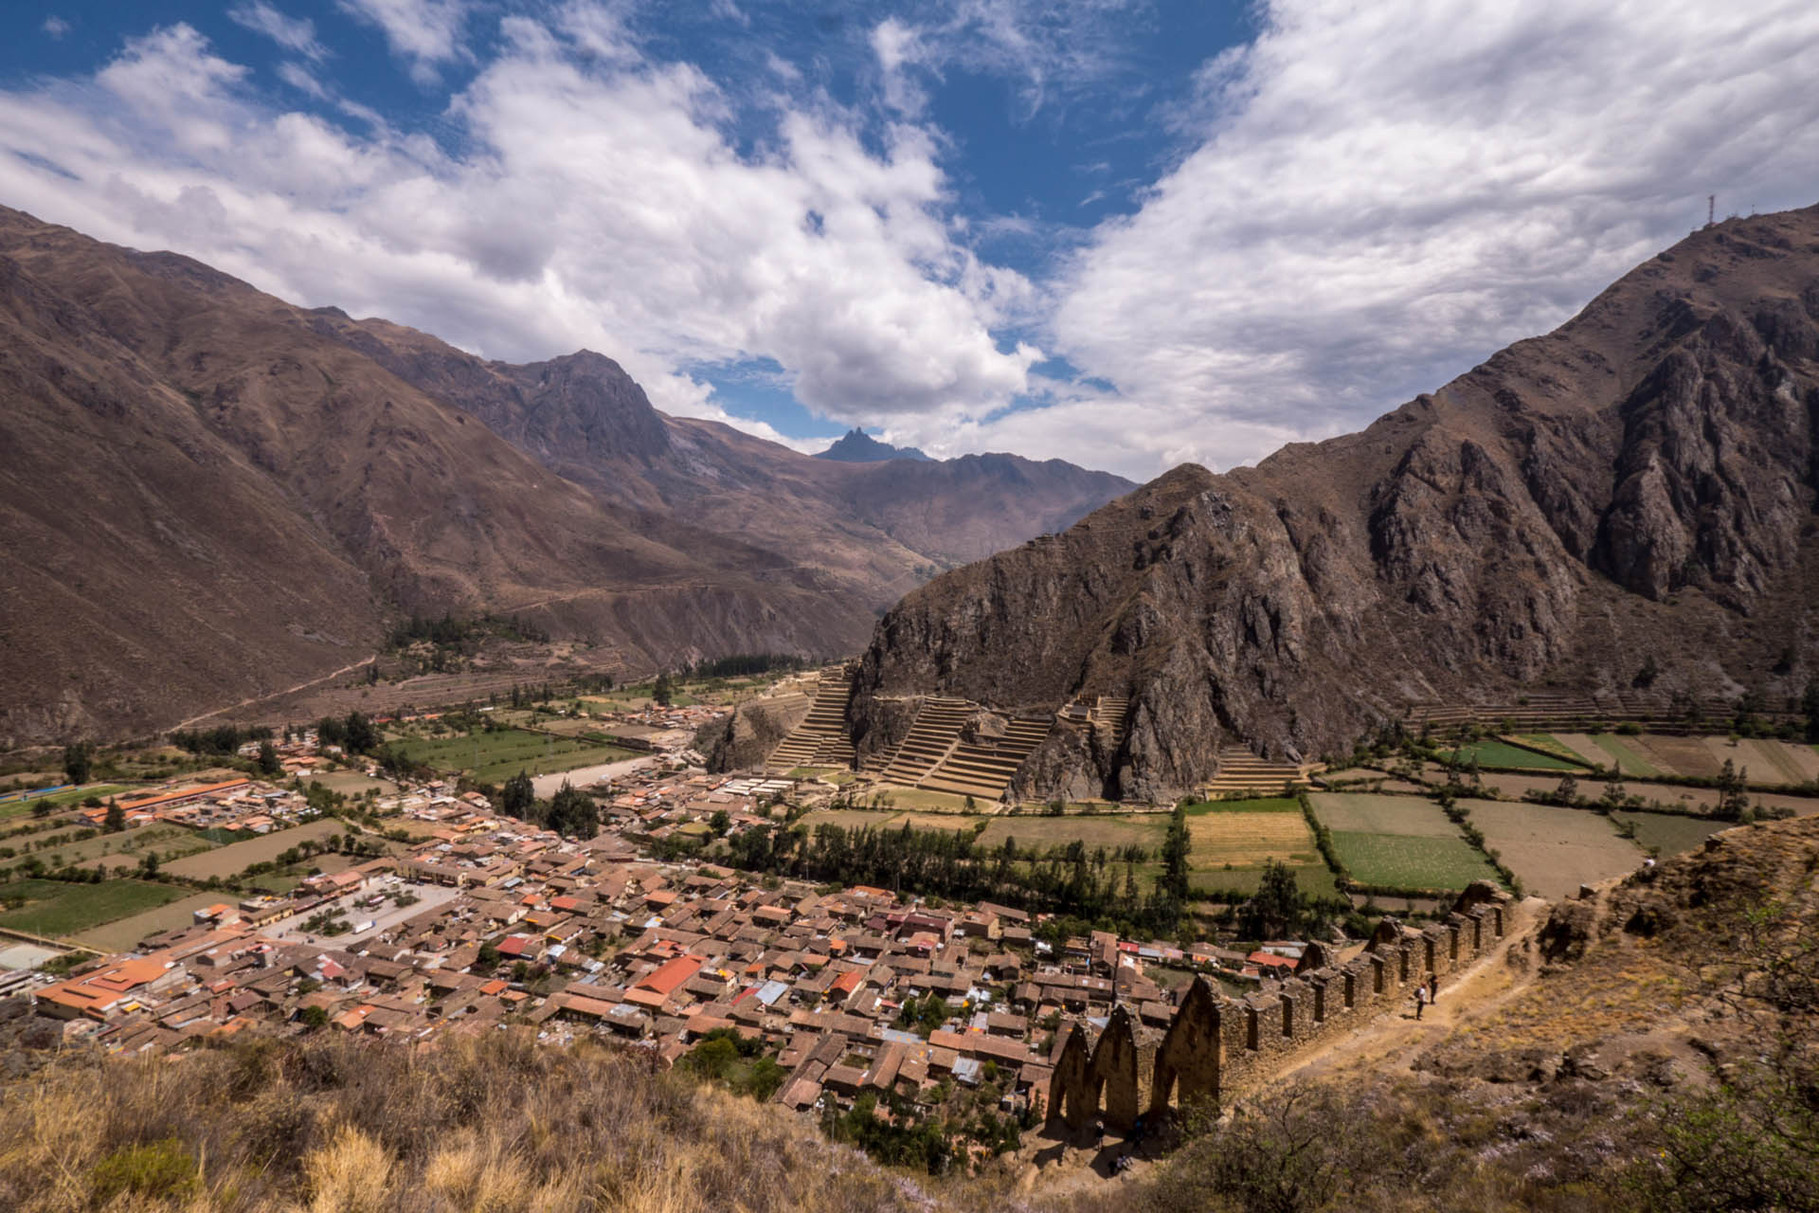 Village and Inca ruins of Ollantaytambo, Sacred Valley